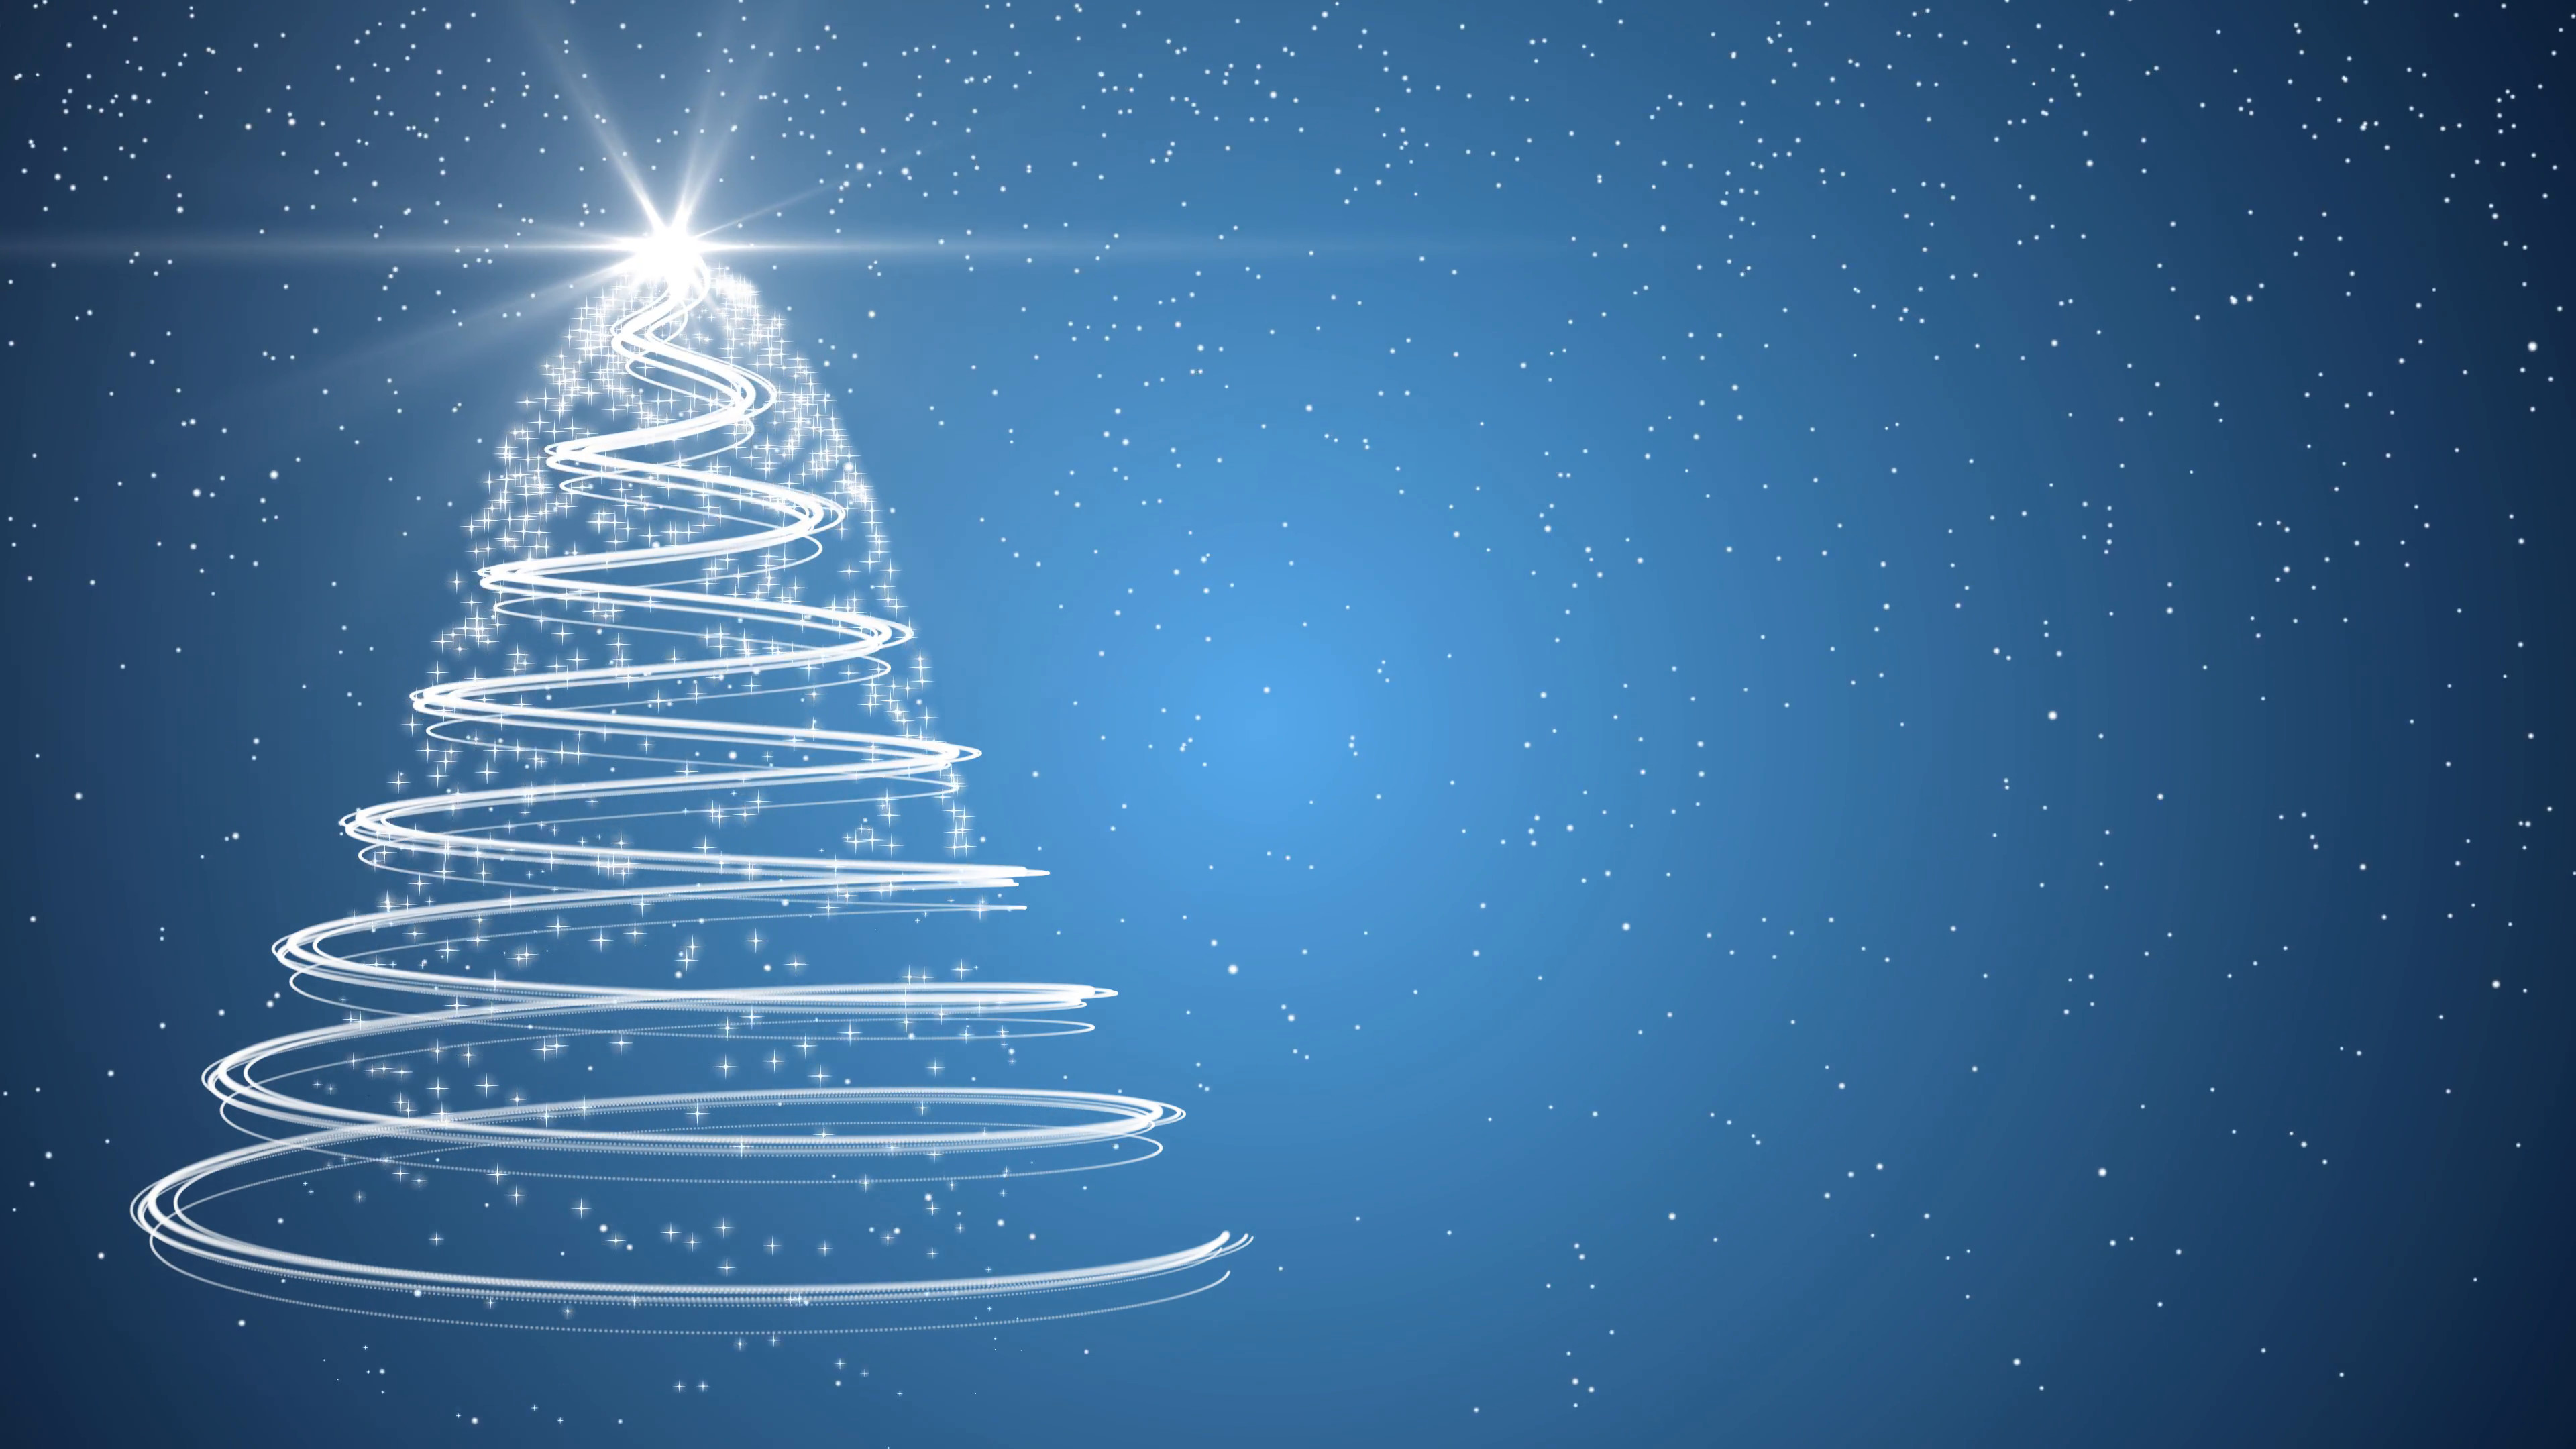 winter holiday party december wallpaper wp30012278